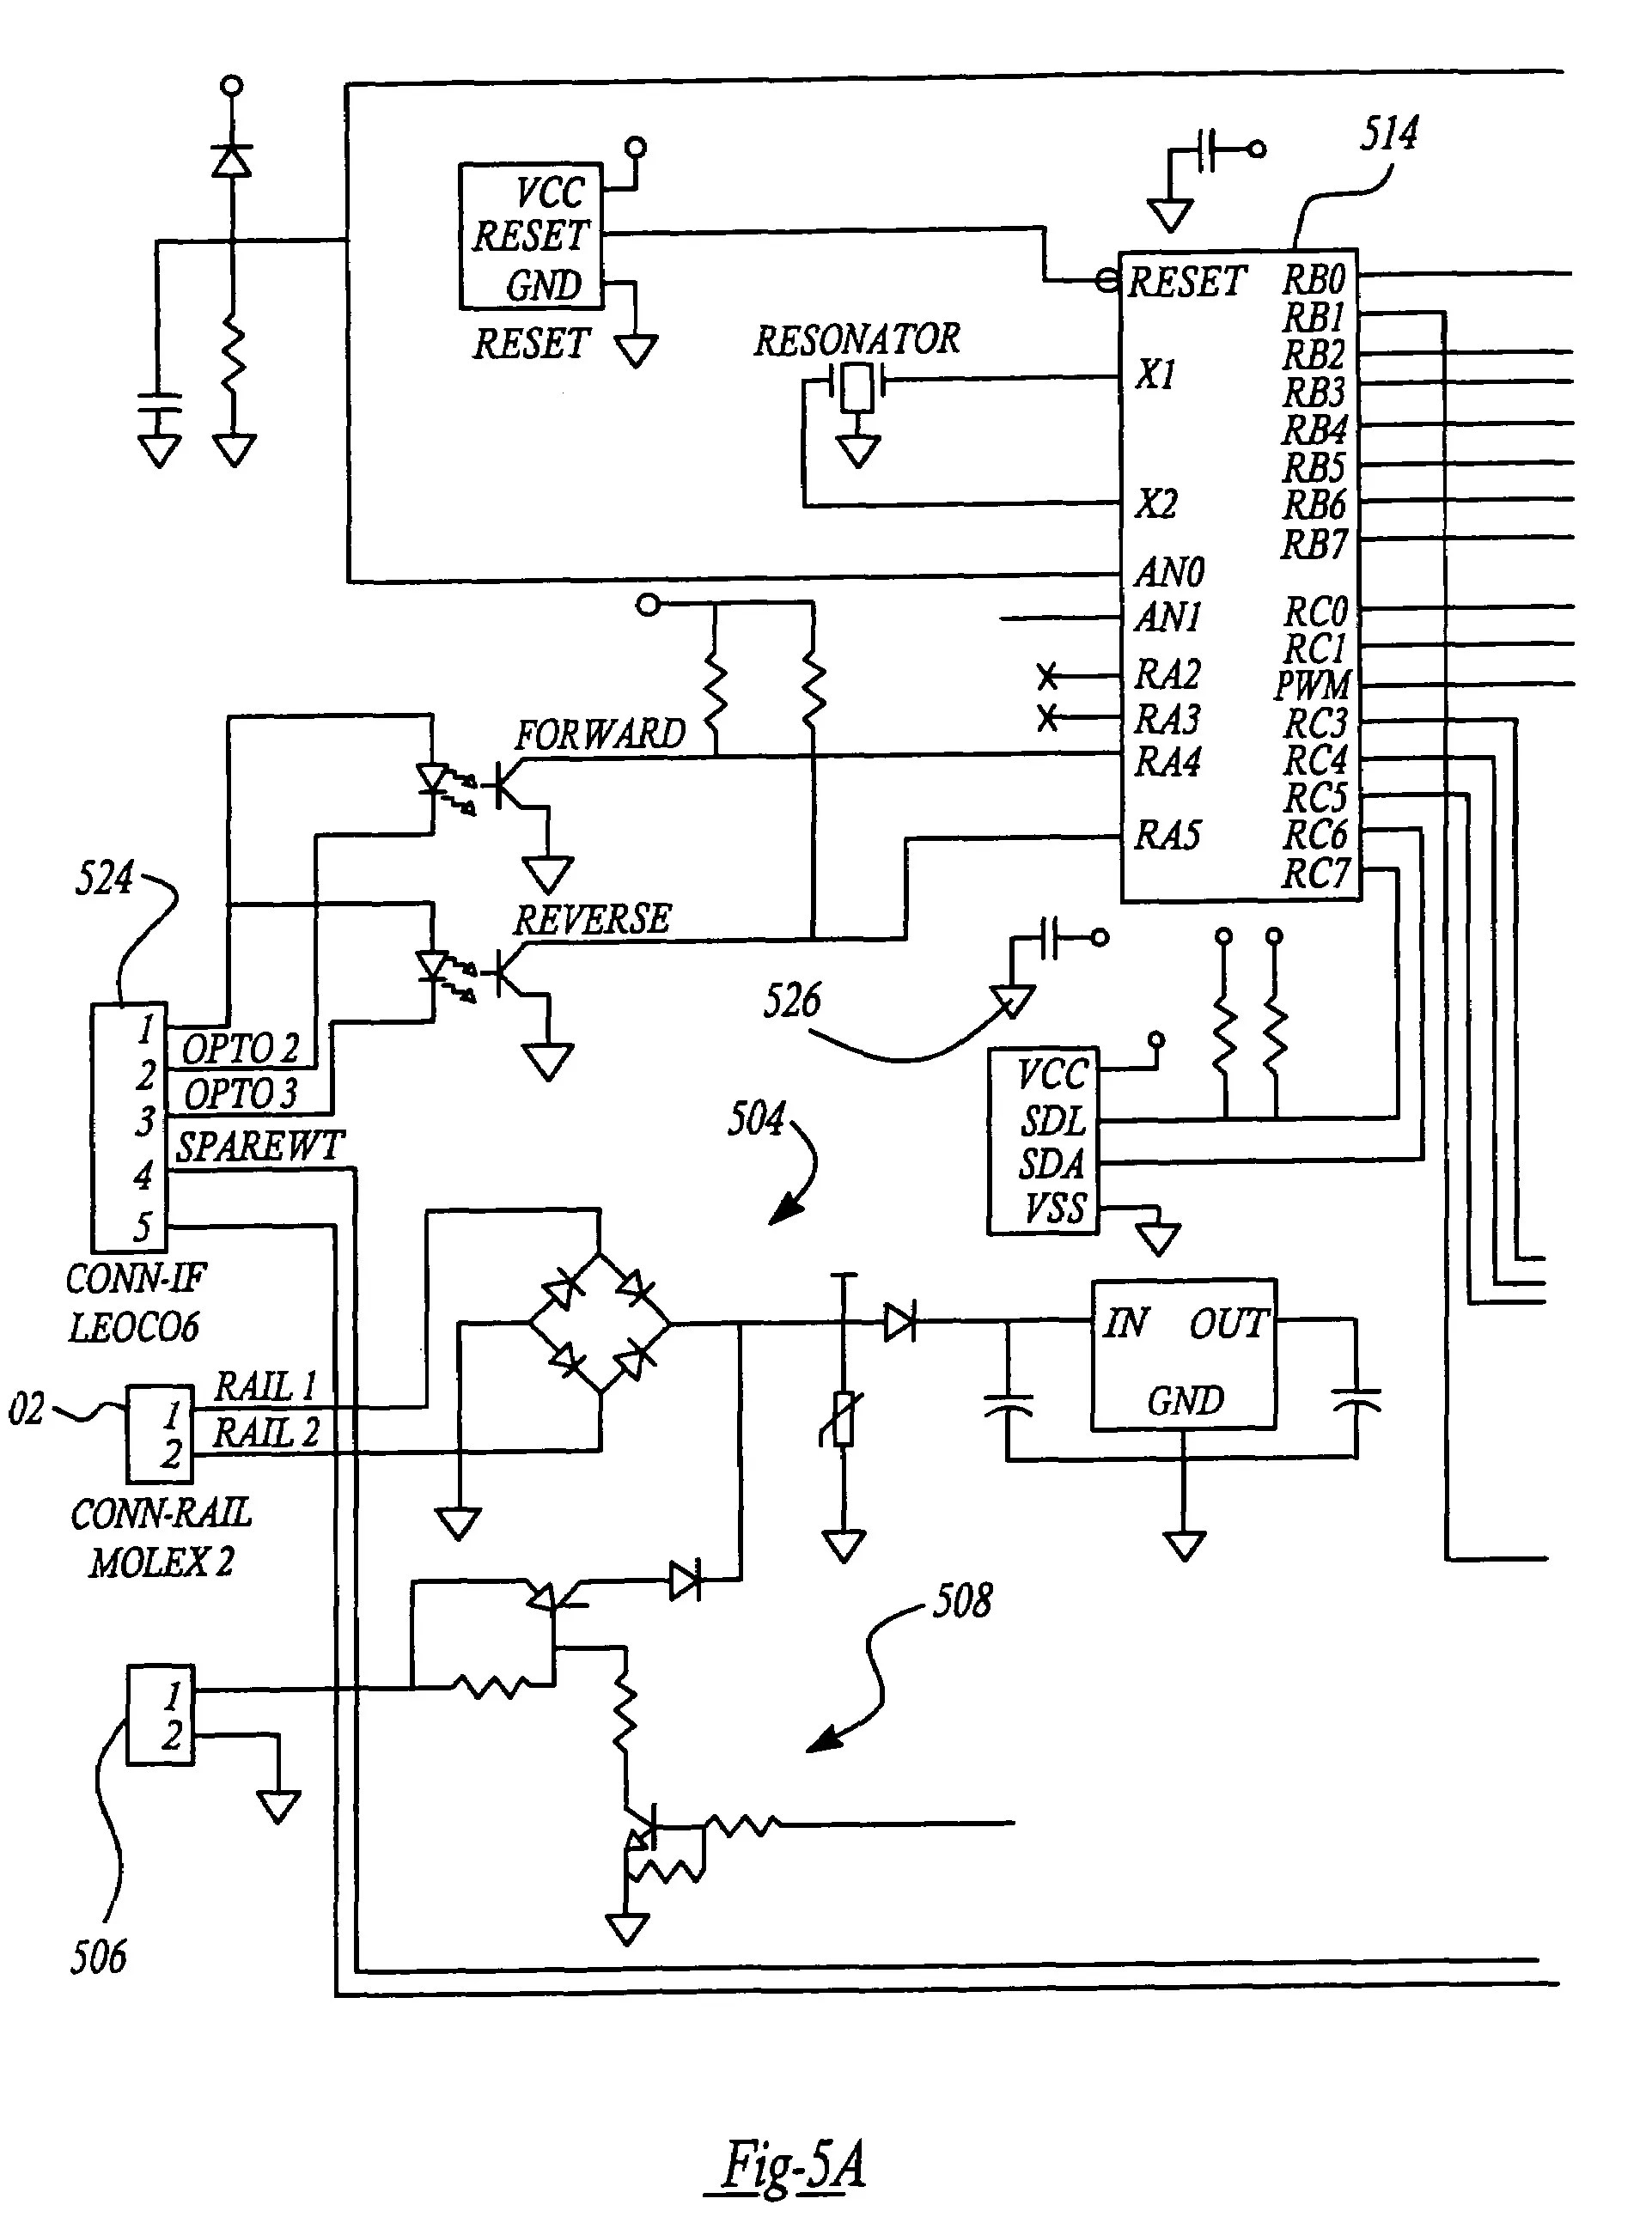 hight resolution of honda wave 100 engine diagram circuits dtmf encoding and decoding six channel infrared remote of honda